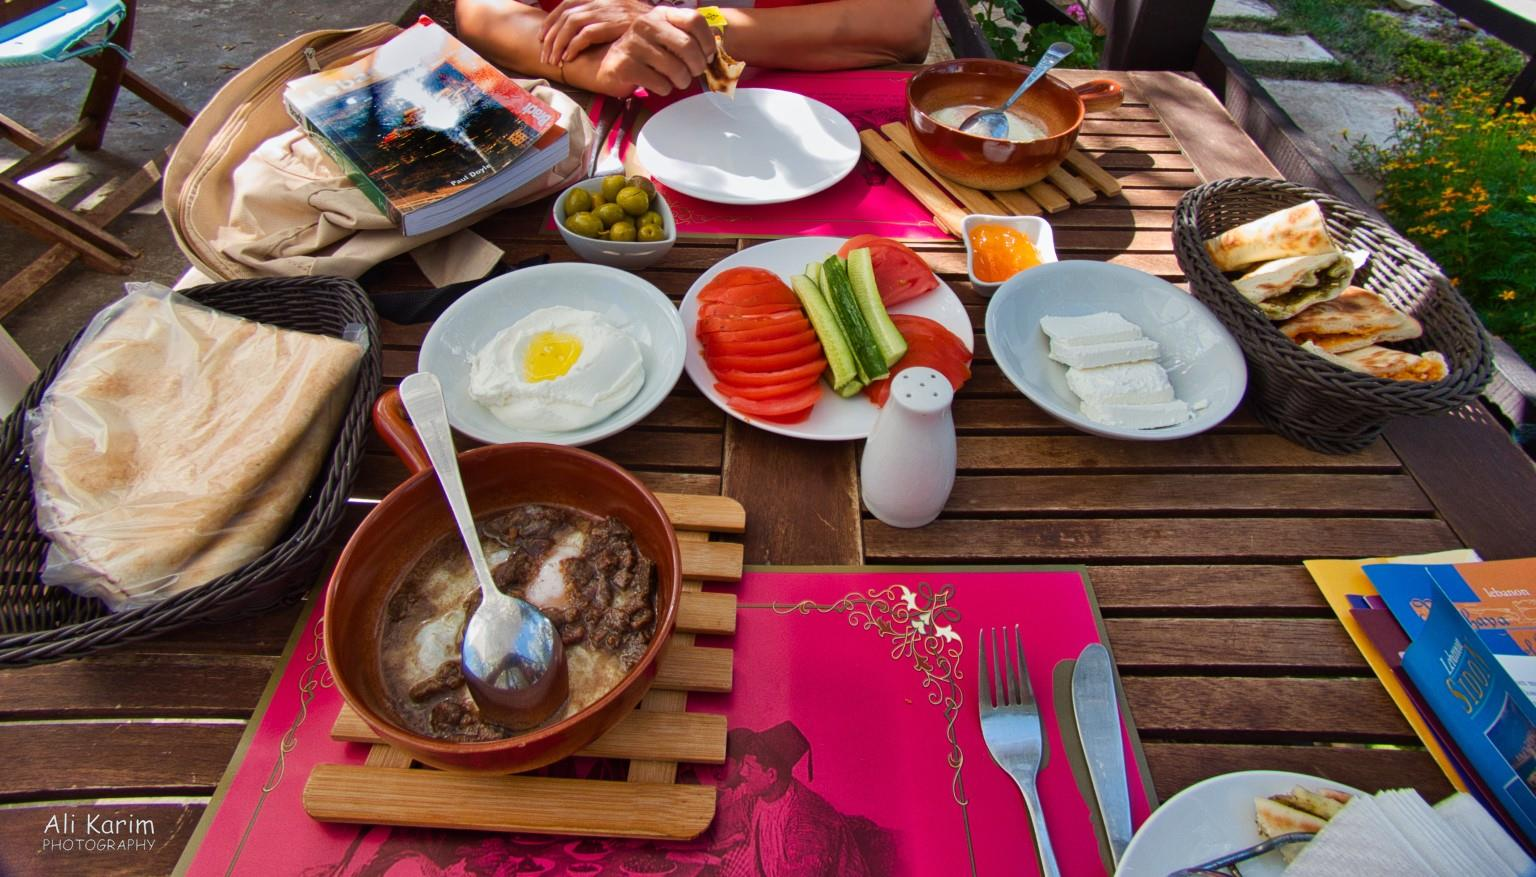 Druze and the Chouf Mountains Typical Druze breakfast of eggs fried with goat meat in a porcelain pan, with Manoushe, bread, olives, cheese, btter, marmalade, humus, tomato's and cucumber.